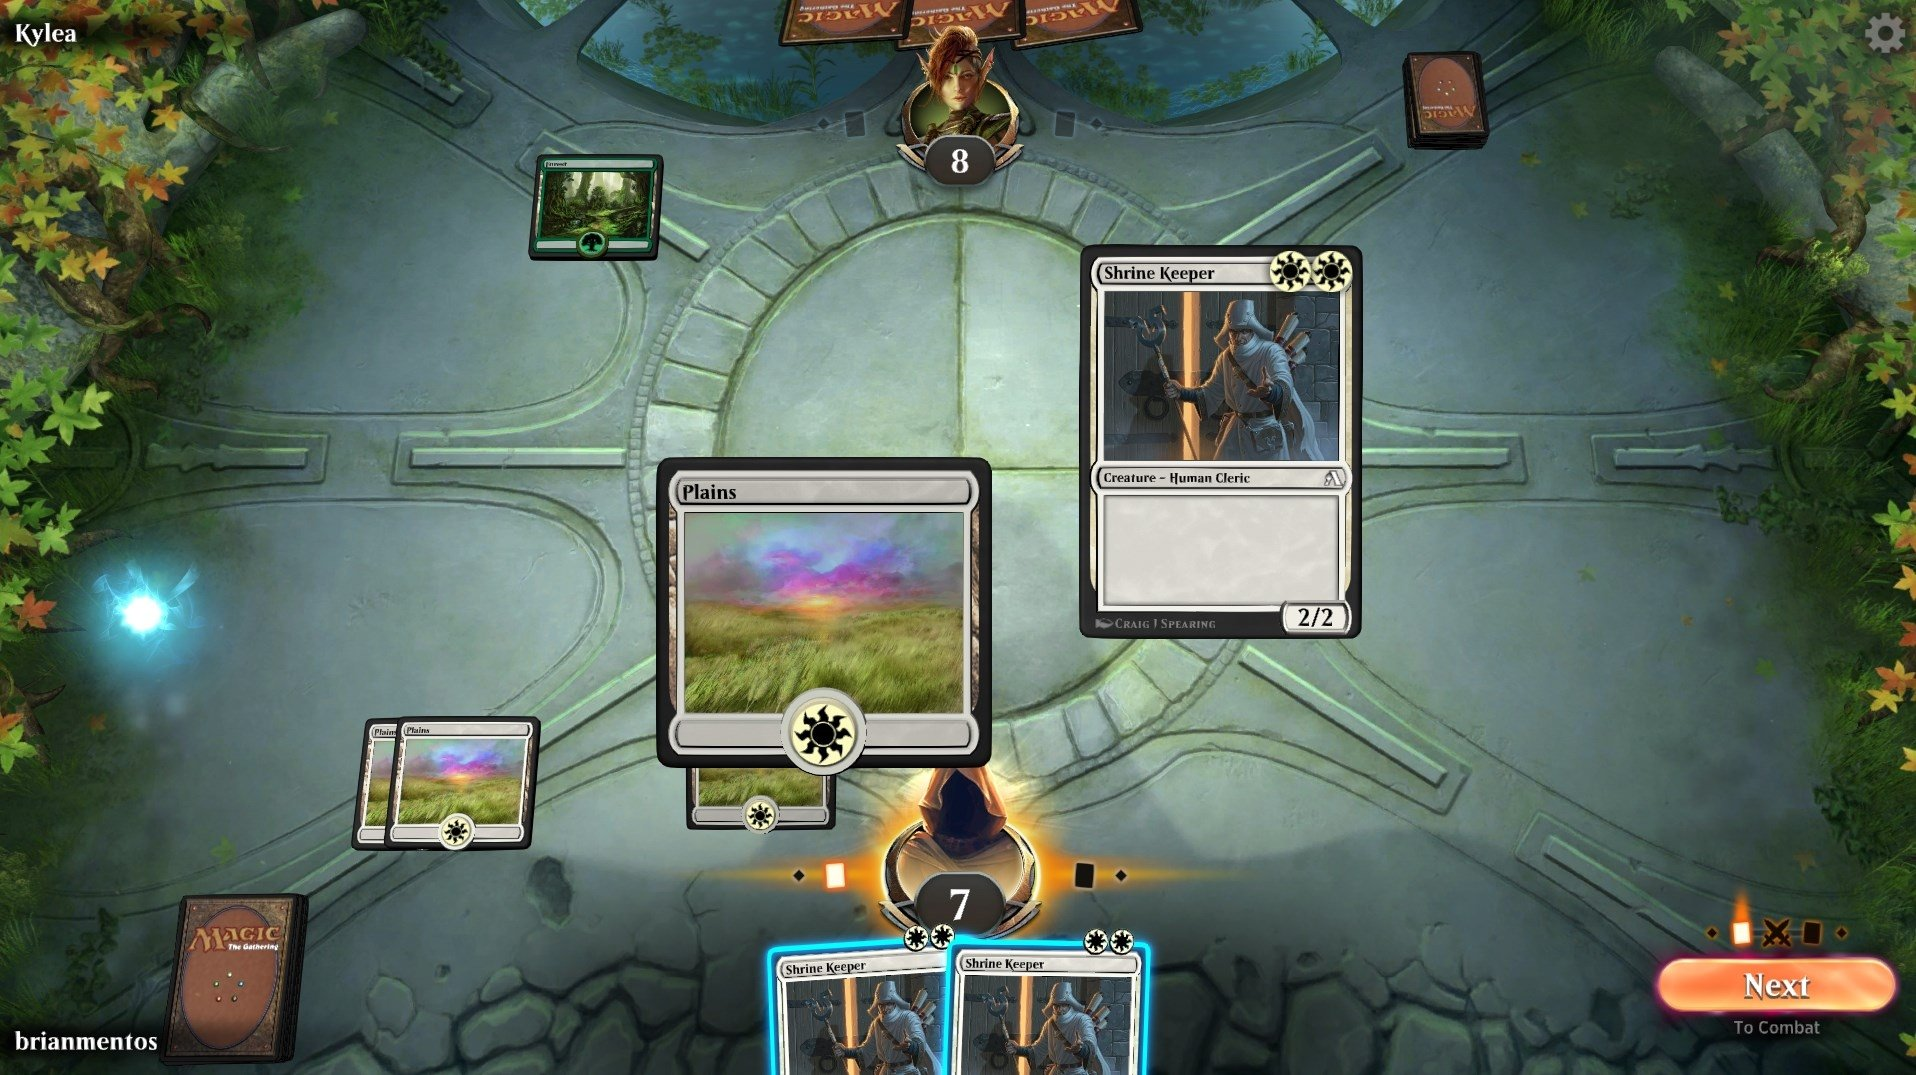 Magic: The Gathering 0 1 1595 - Download for PC Free